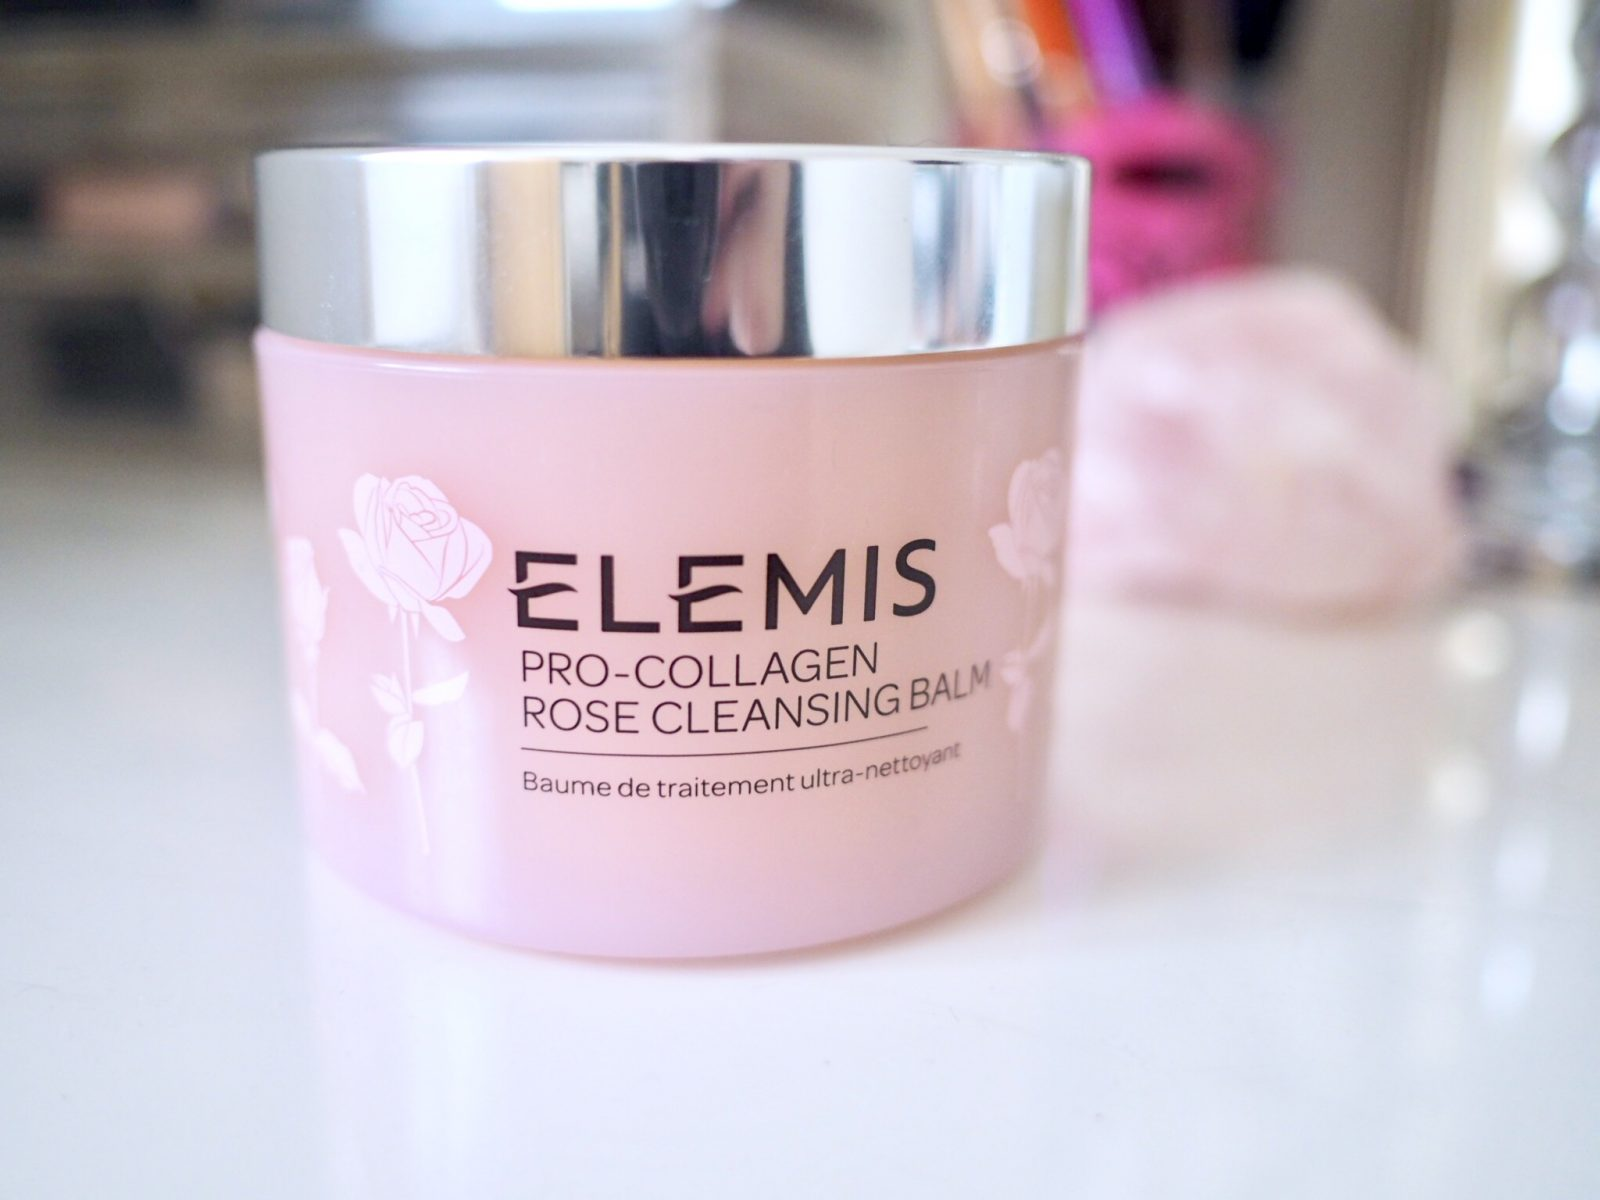 Pro-Collagen Cleansing Balm by Elemis #7